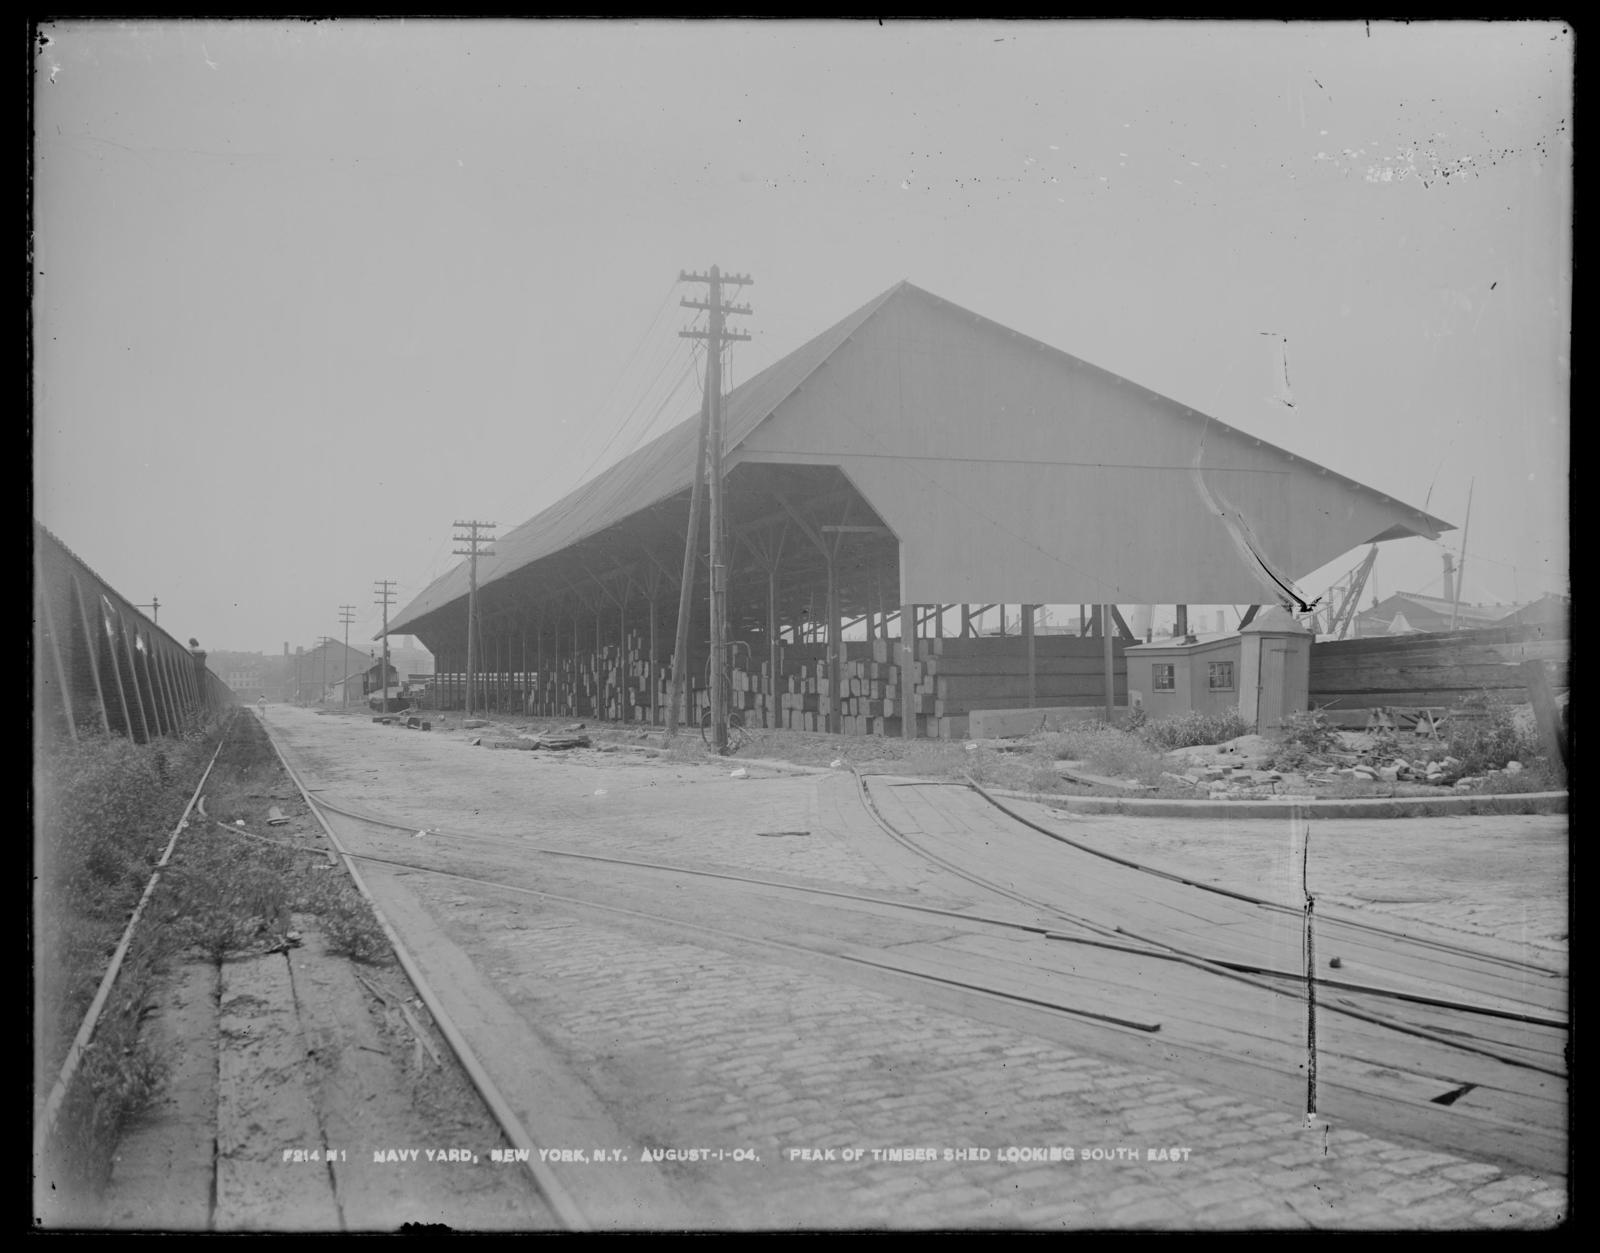 Peak of Timber Shed, Looking Southeast